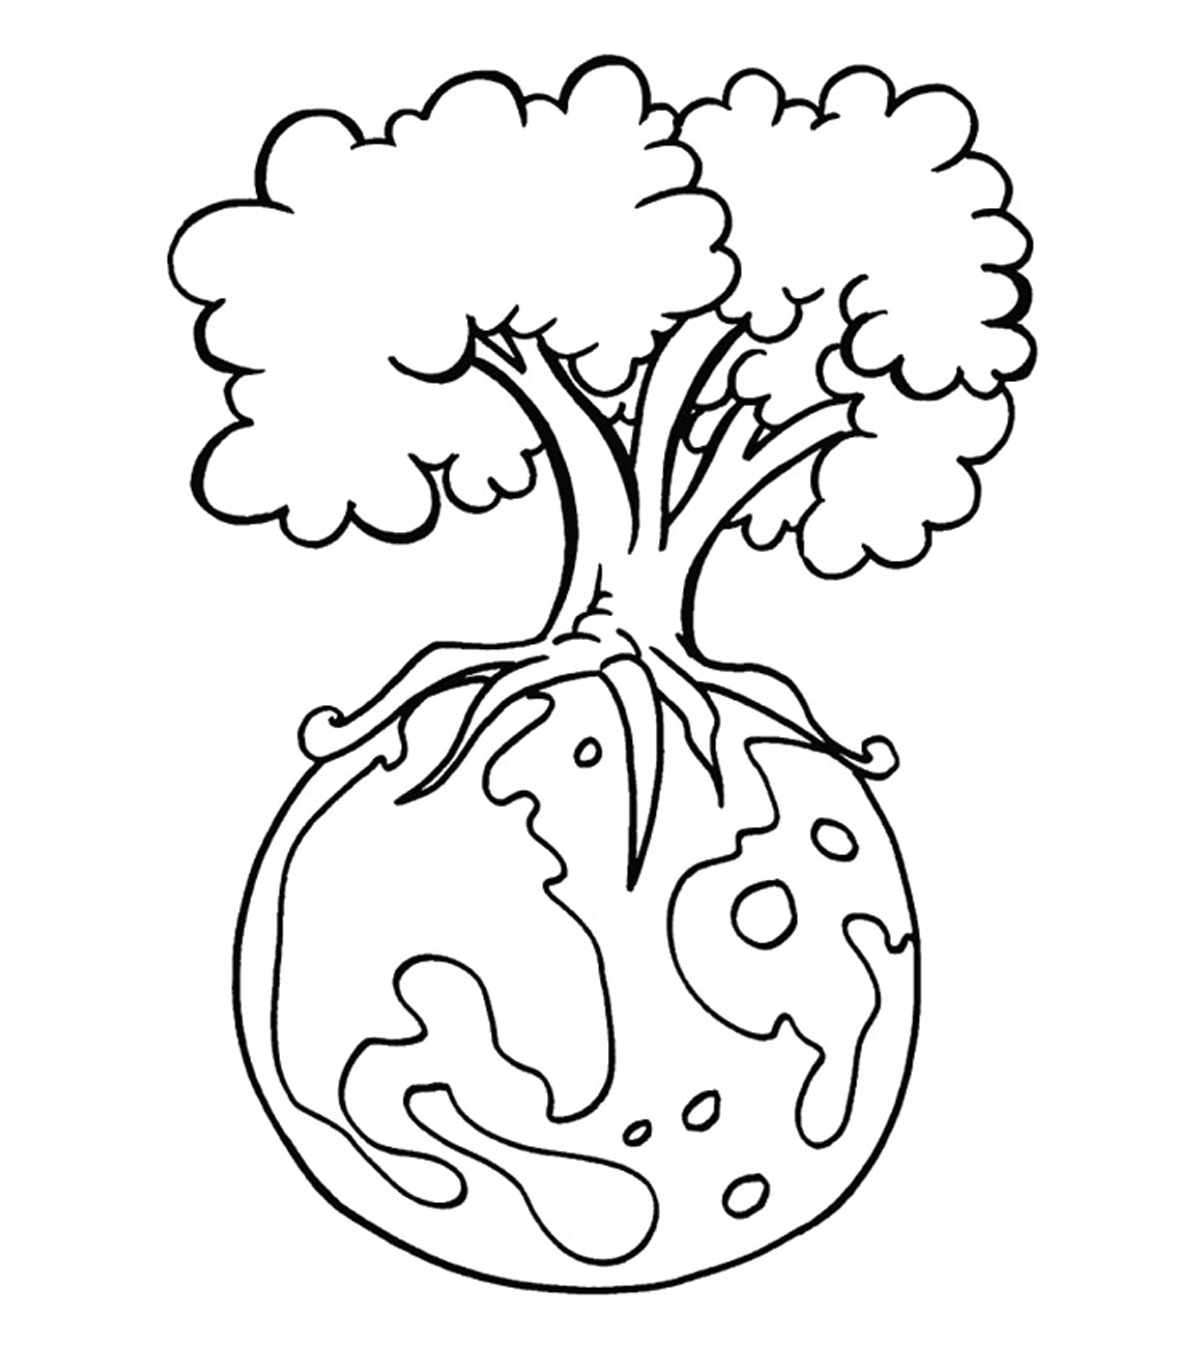 coloring for kids nature kids nature drawing at getdrawings free download nature kids for coloring